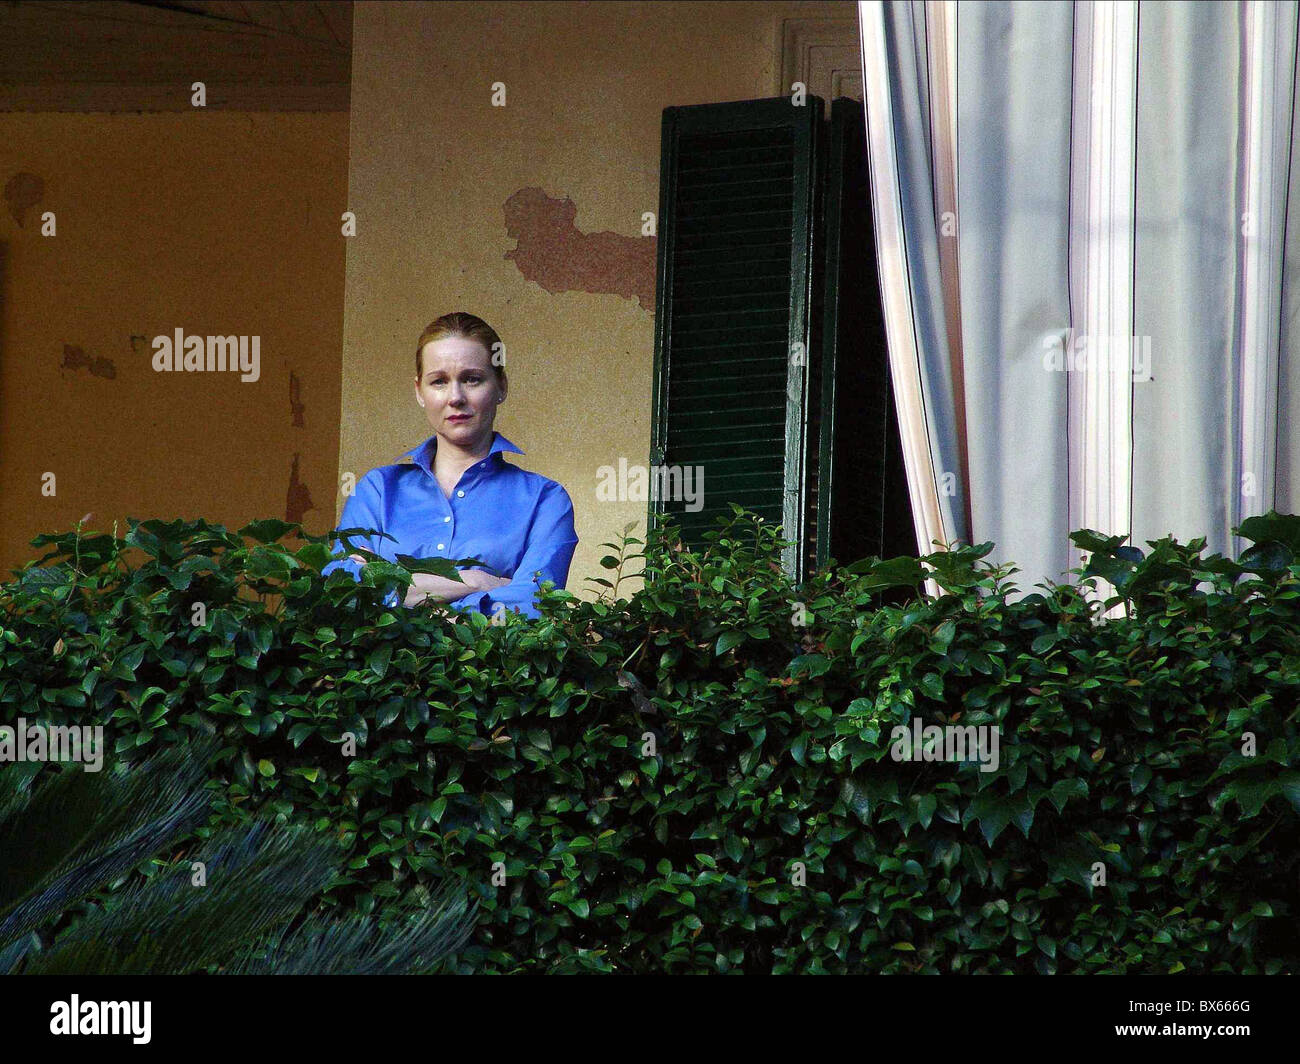 LAURA LINNEY THE CITY OF YOUR FINAL DESTINATION (2009) - Stock Image